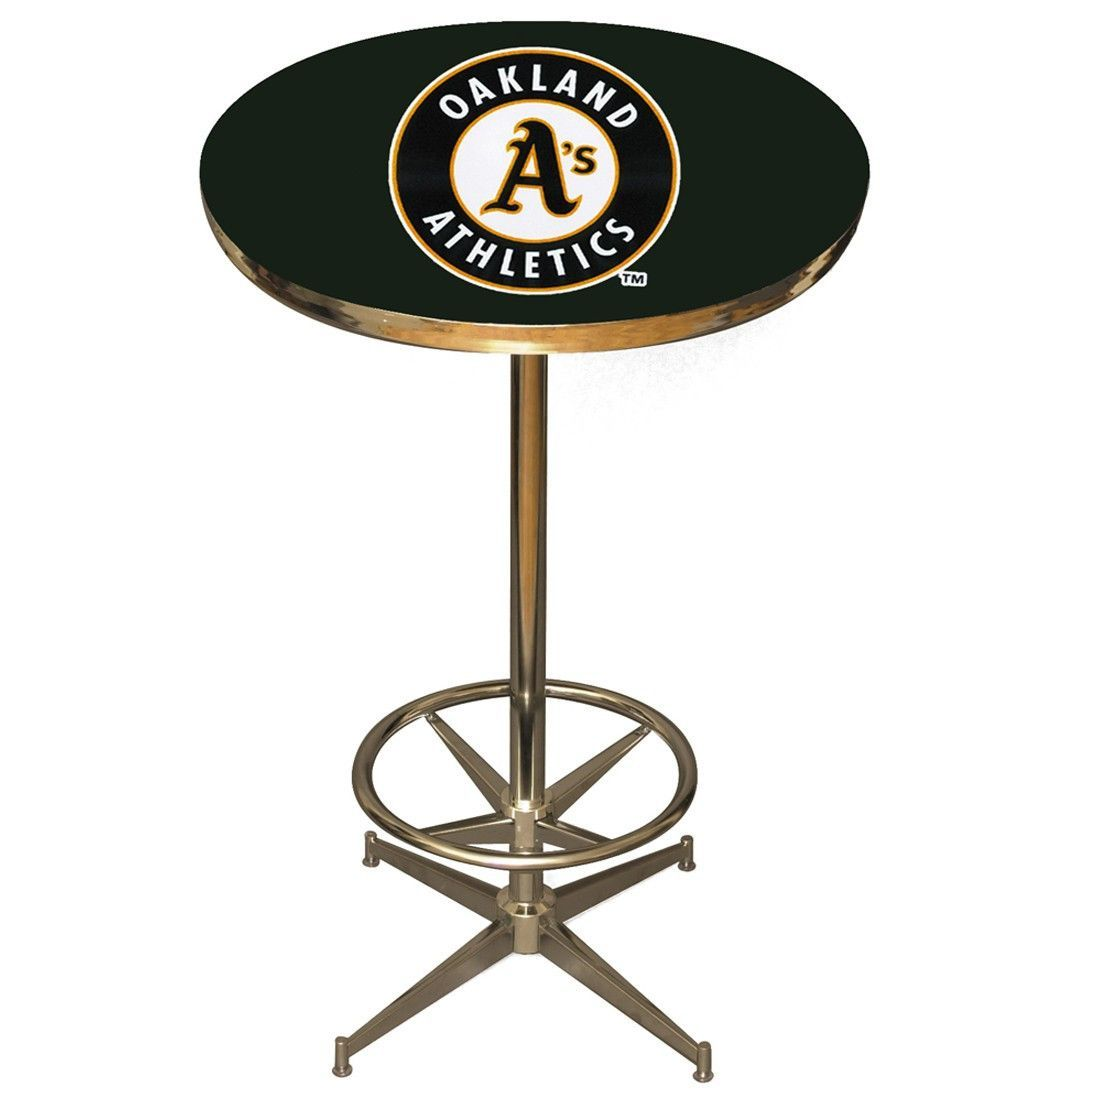 The Oakland Athletics Fan Cave Pub Table by Imperial